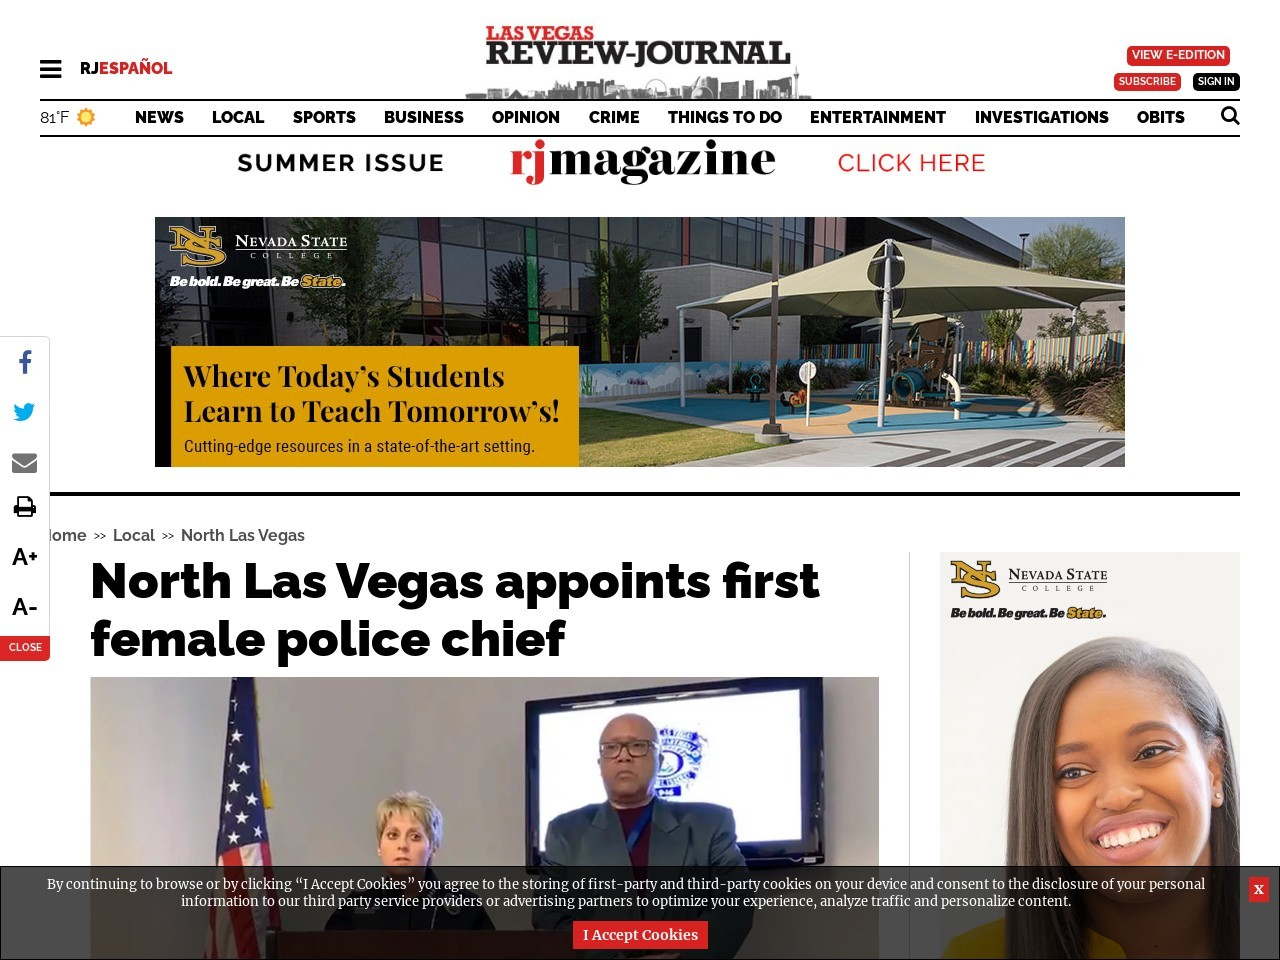 North Las Vegas appoints first female police chief